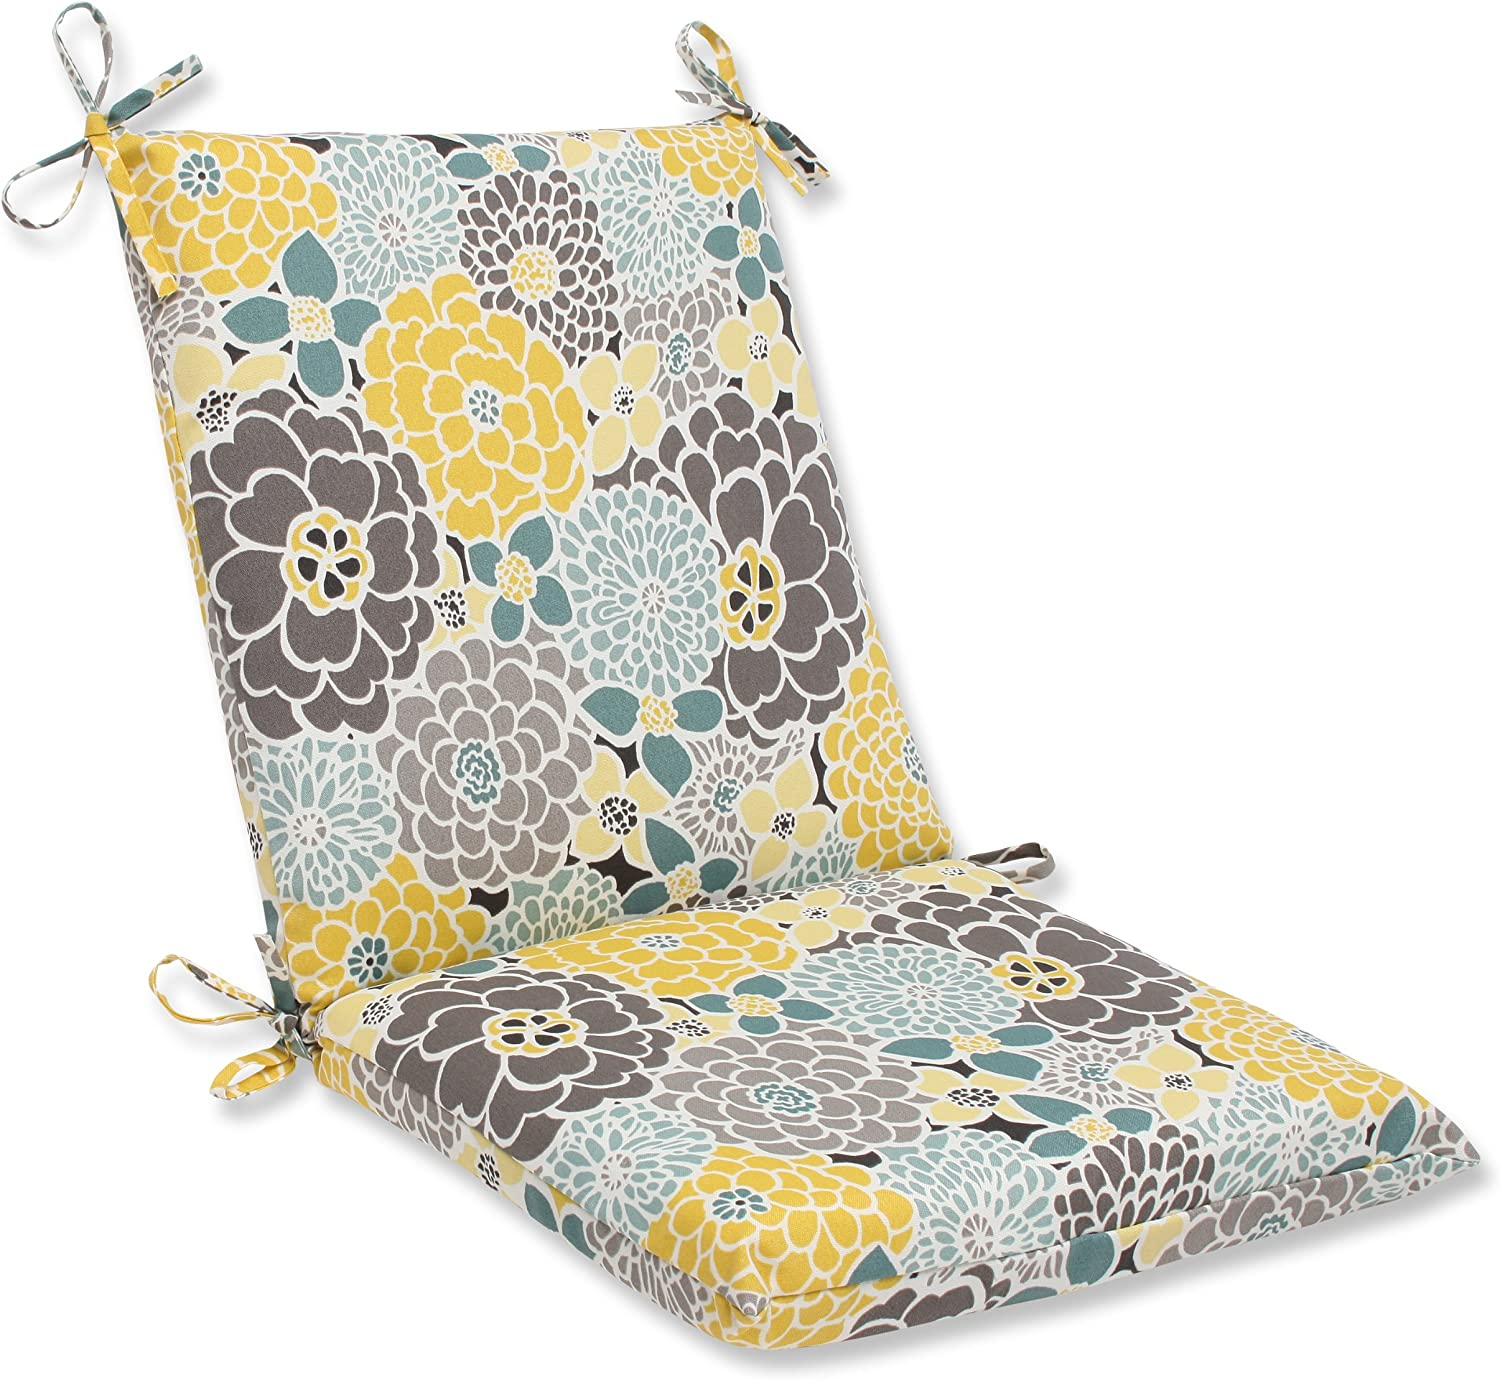 Pillow Perfect 615592 Fresco Navy CL Cushion, 80 in. L X 23 in. W X 3 in. D